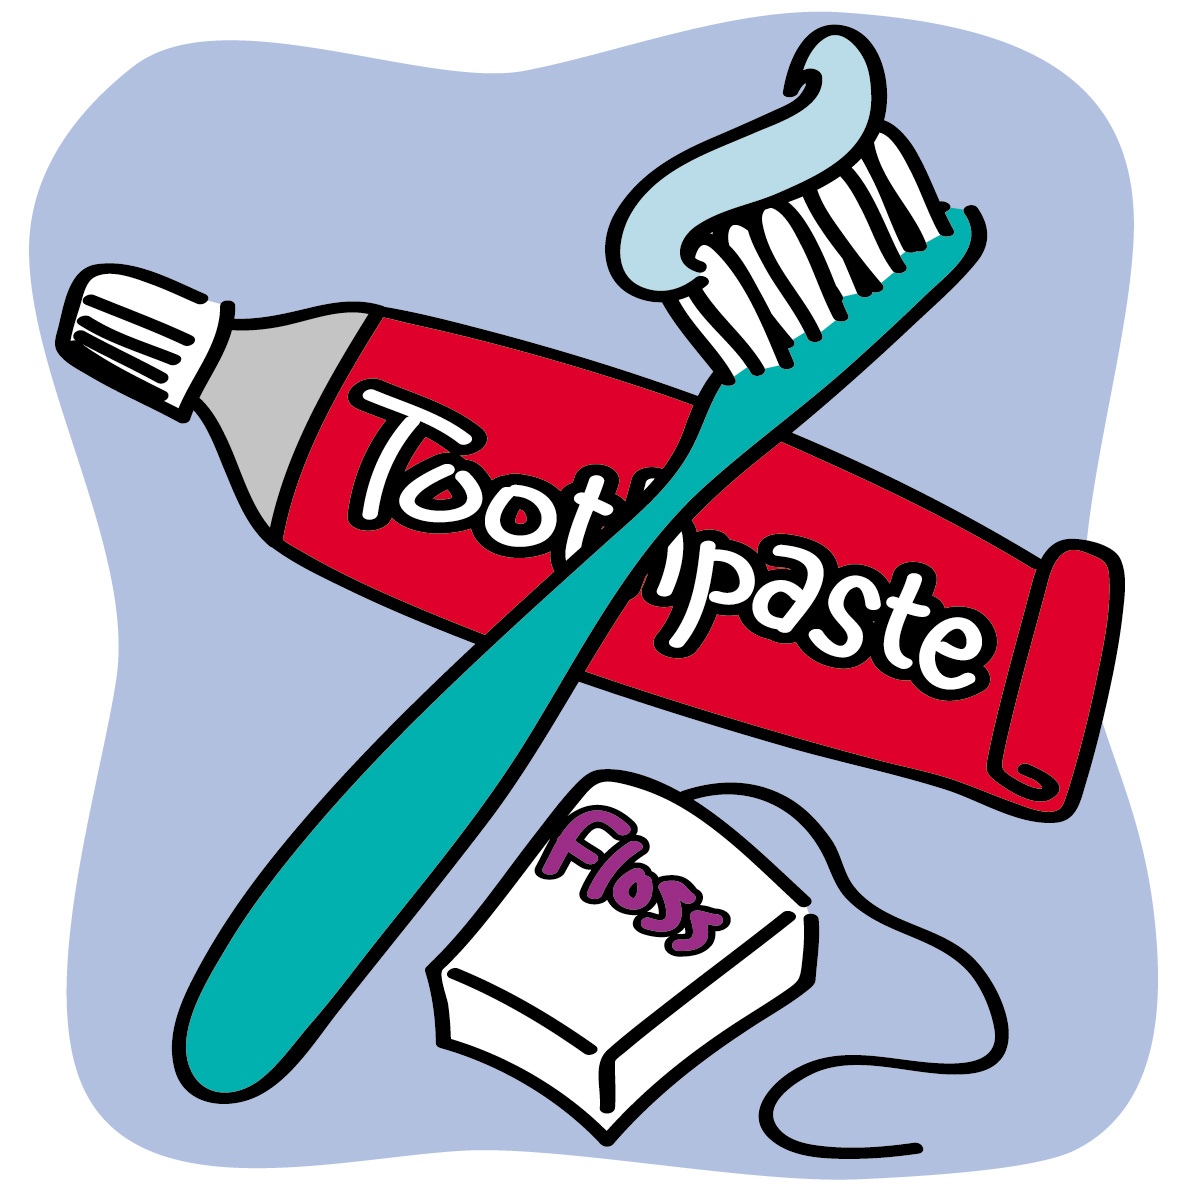 Dentist clipart health product. Images for cartoon flossing